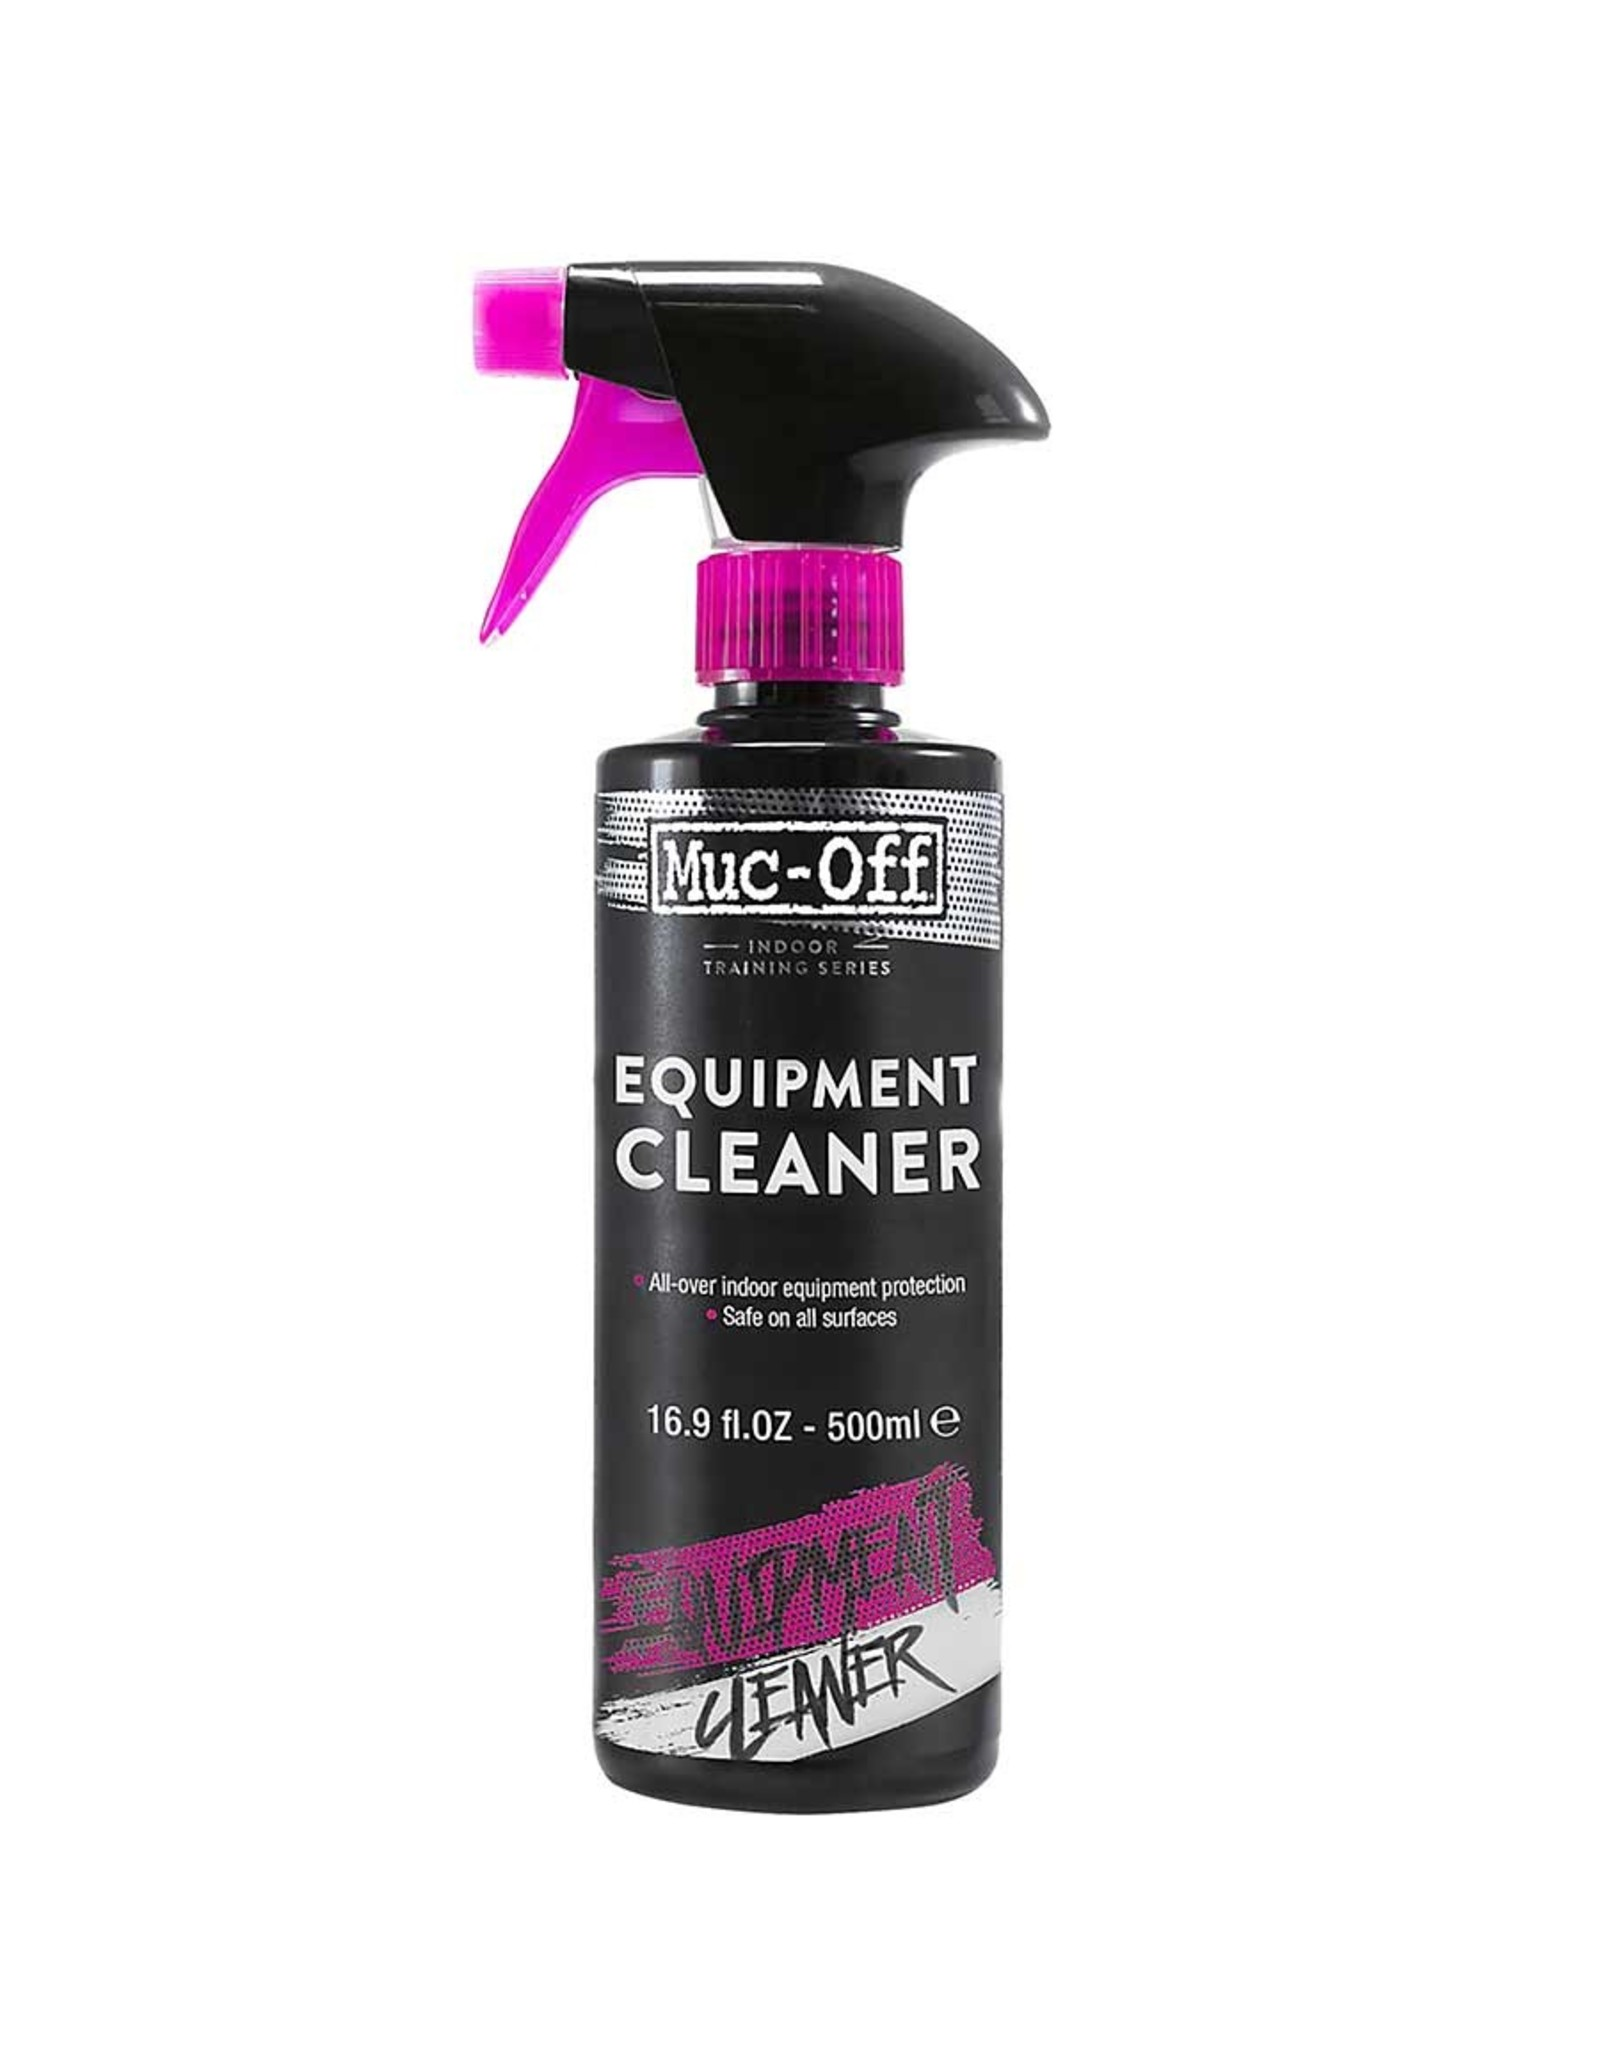 Muc-Off Muc-Off Equipment Cleaner